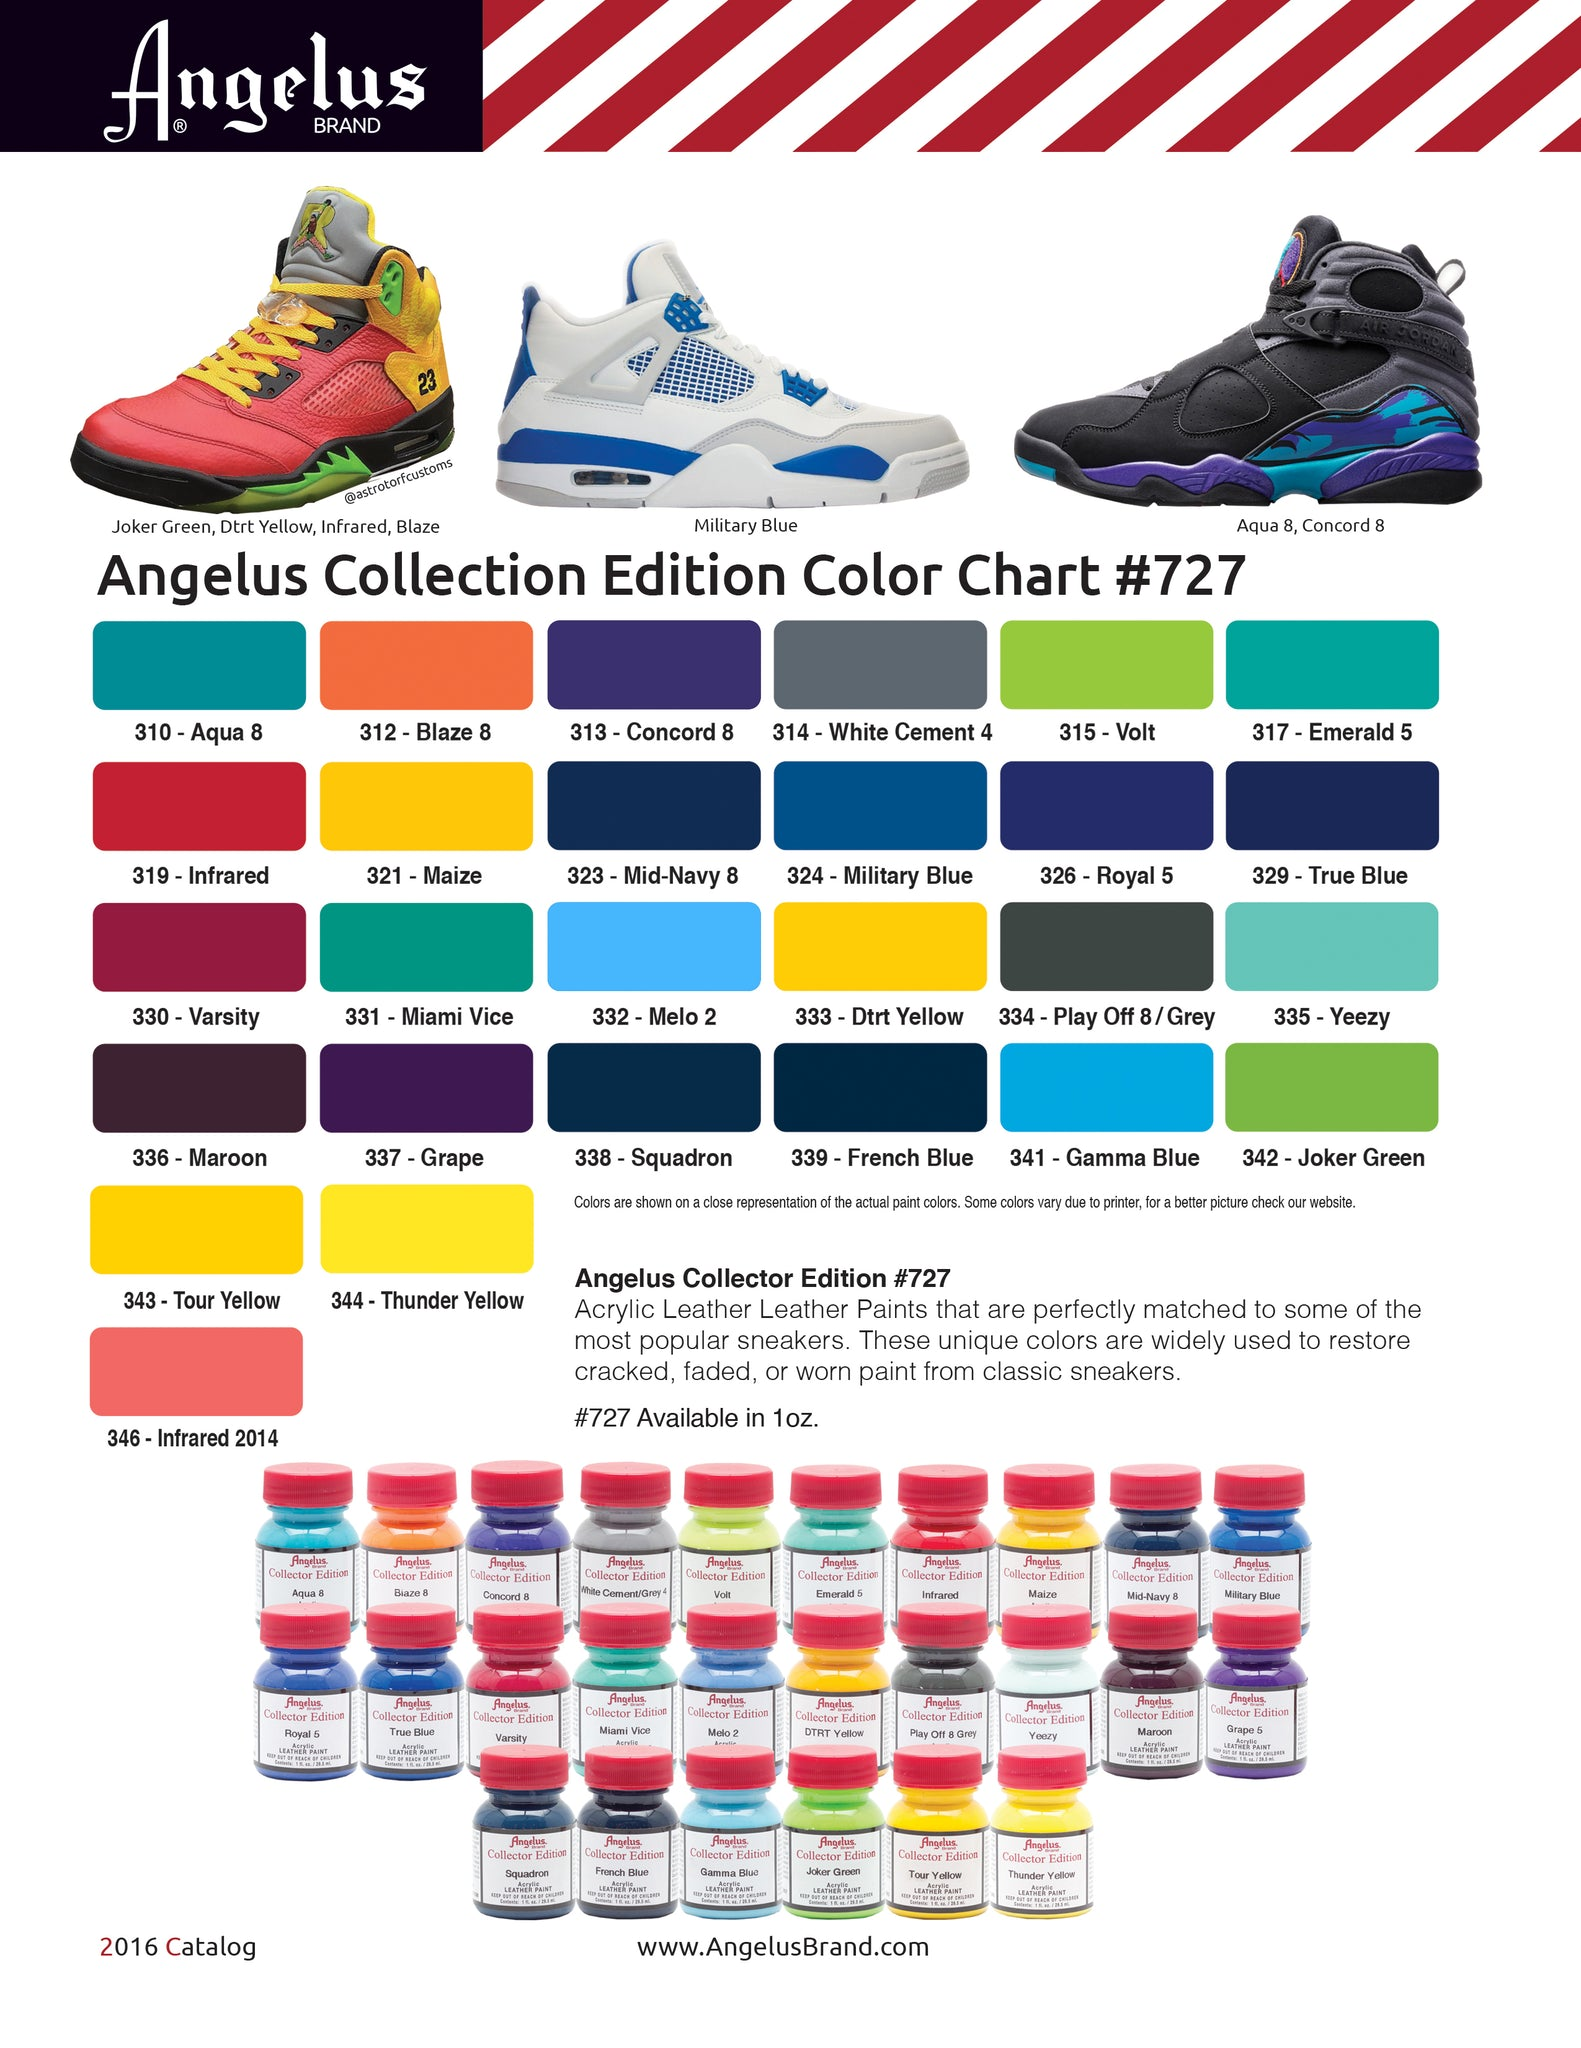 Angelus Collector Edition Color Chart